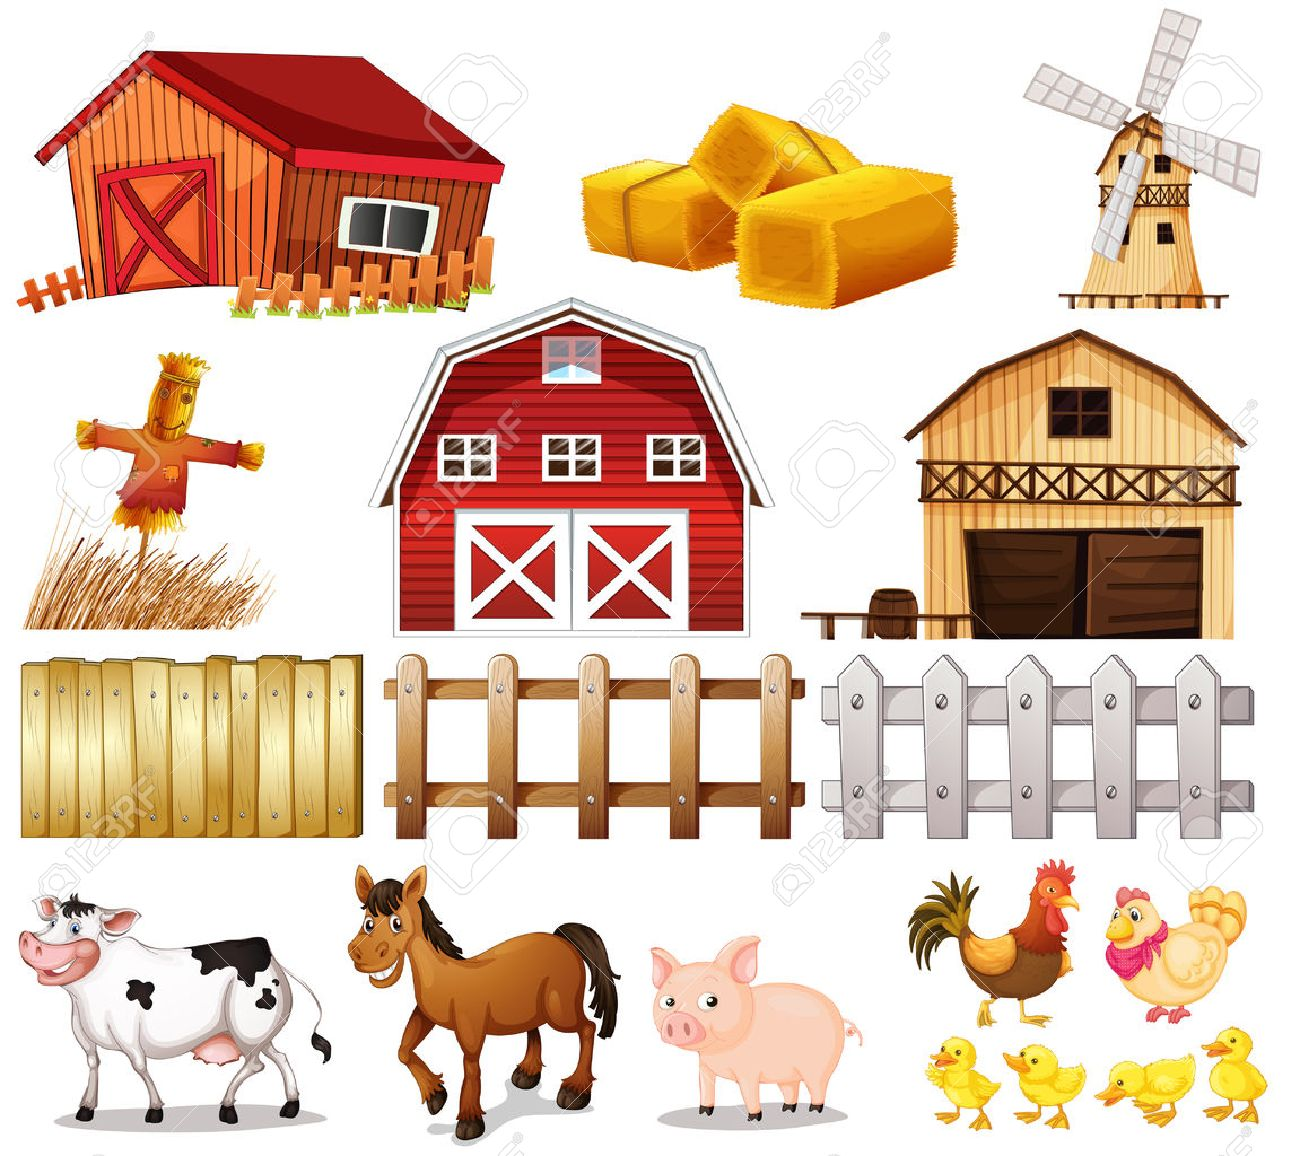 Illustration Of The Things And Animals Found At Farm On A White Background Stock Vector